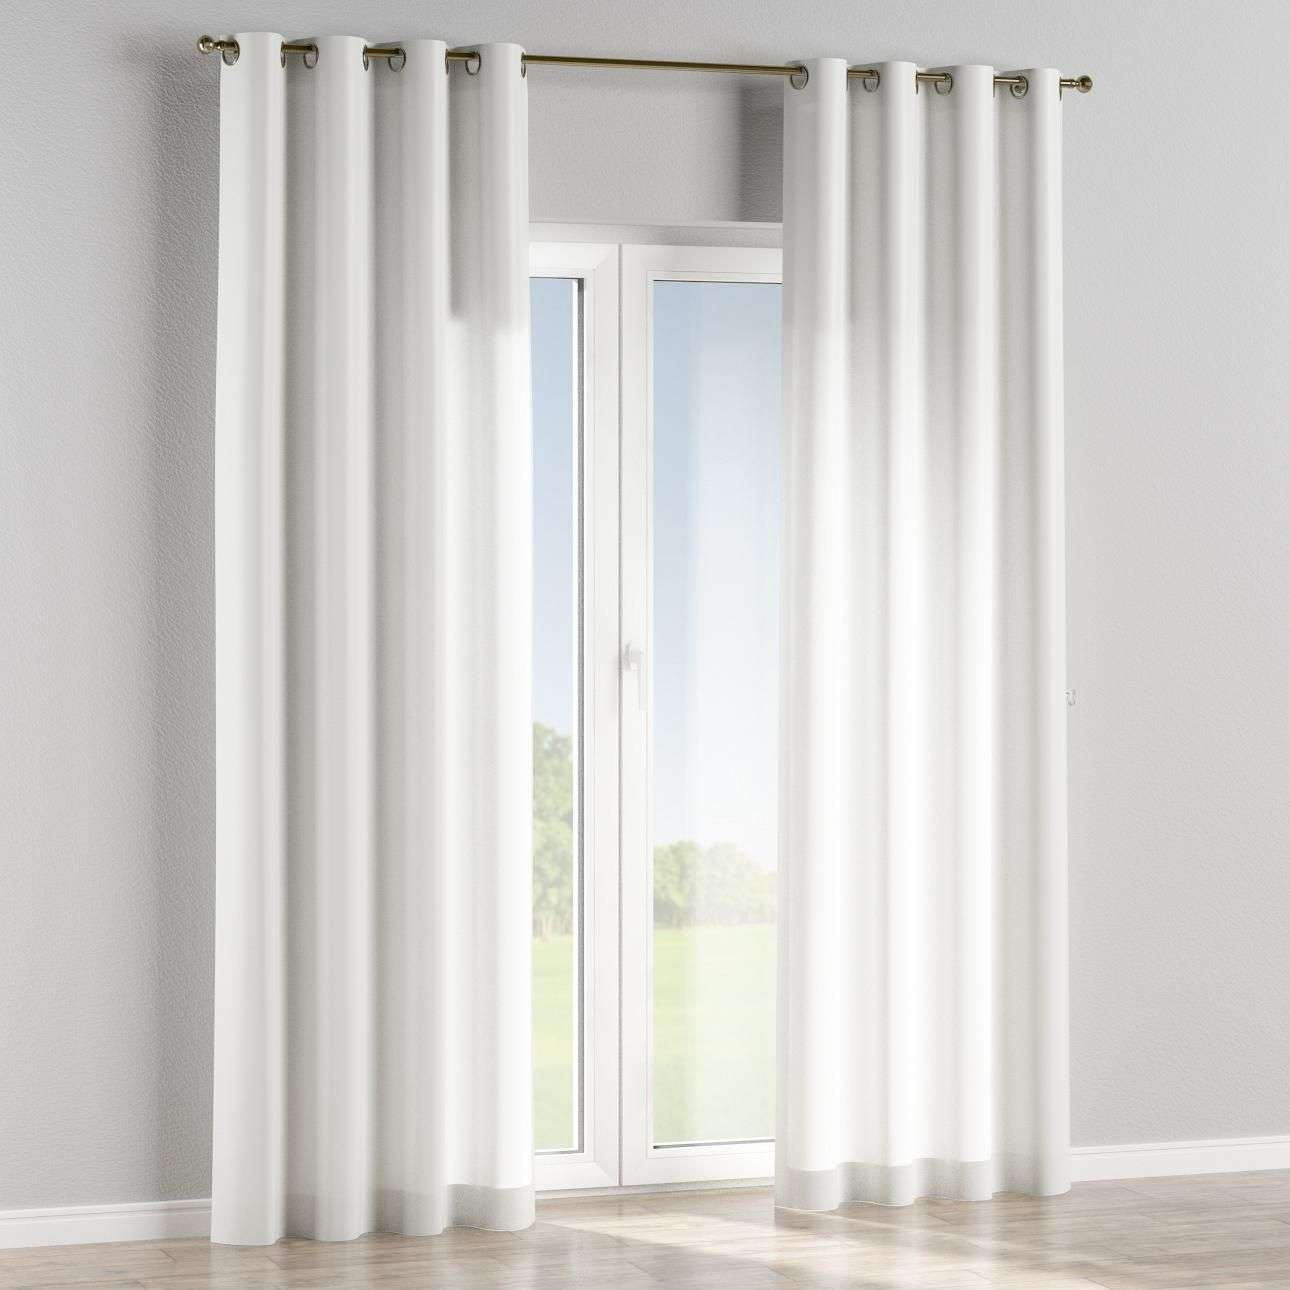 Eyelet curtains in collection Christmas , fabric: 630-17